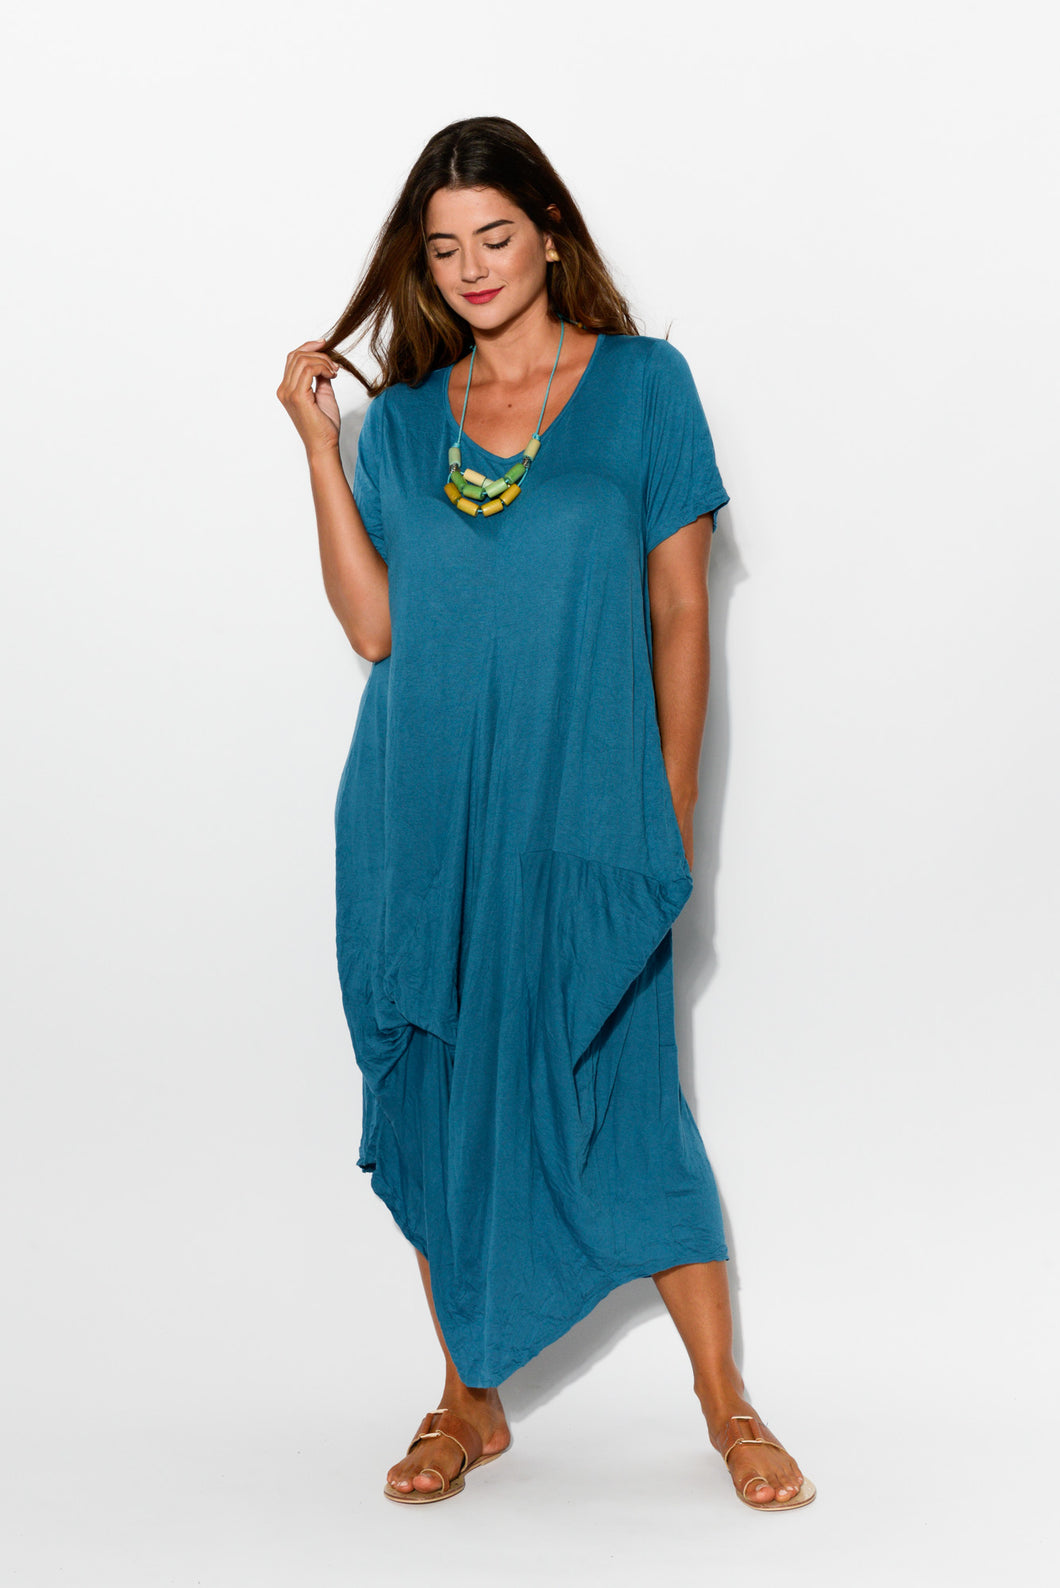 Teal Crinkle Cotton Panel Dress - Blue Bungalow